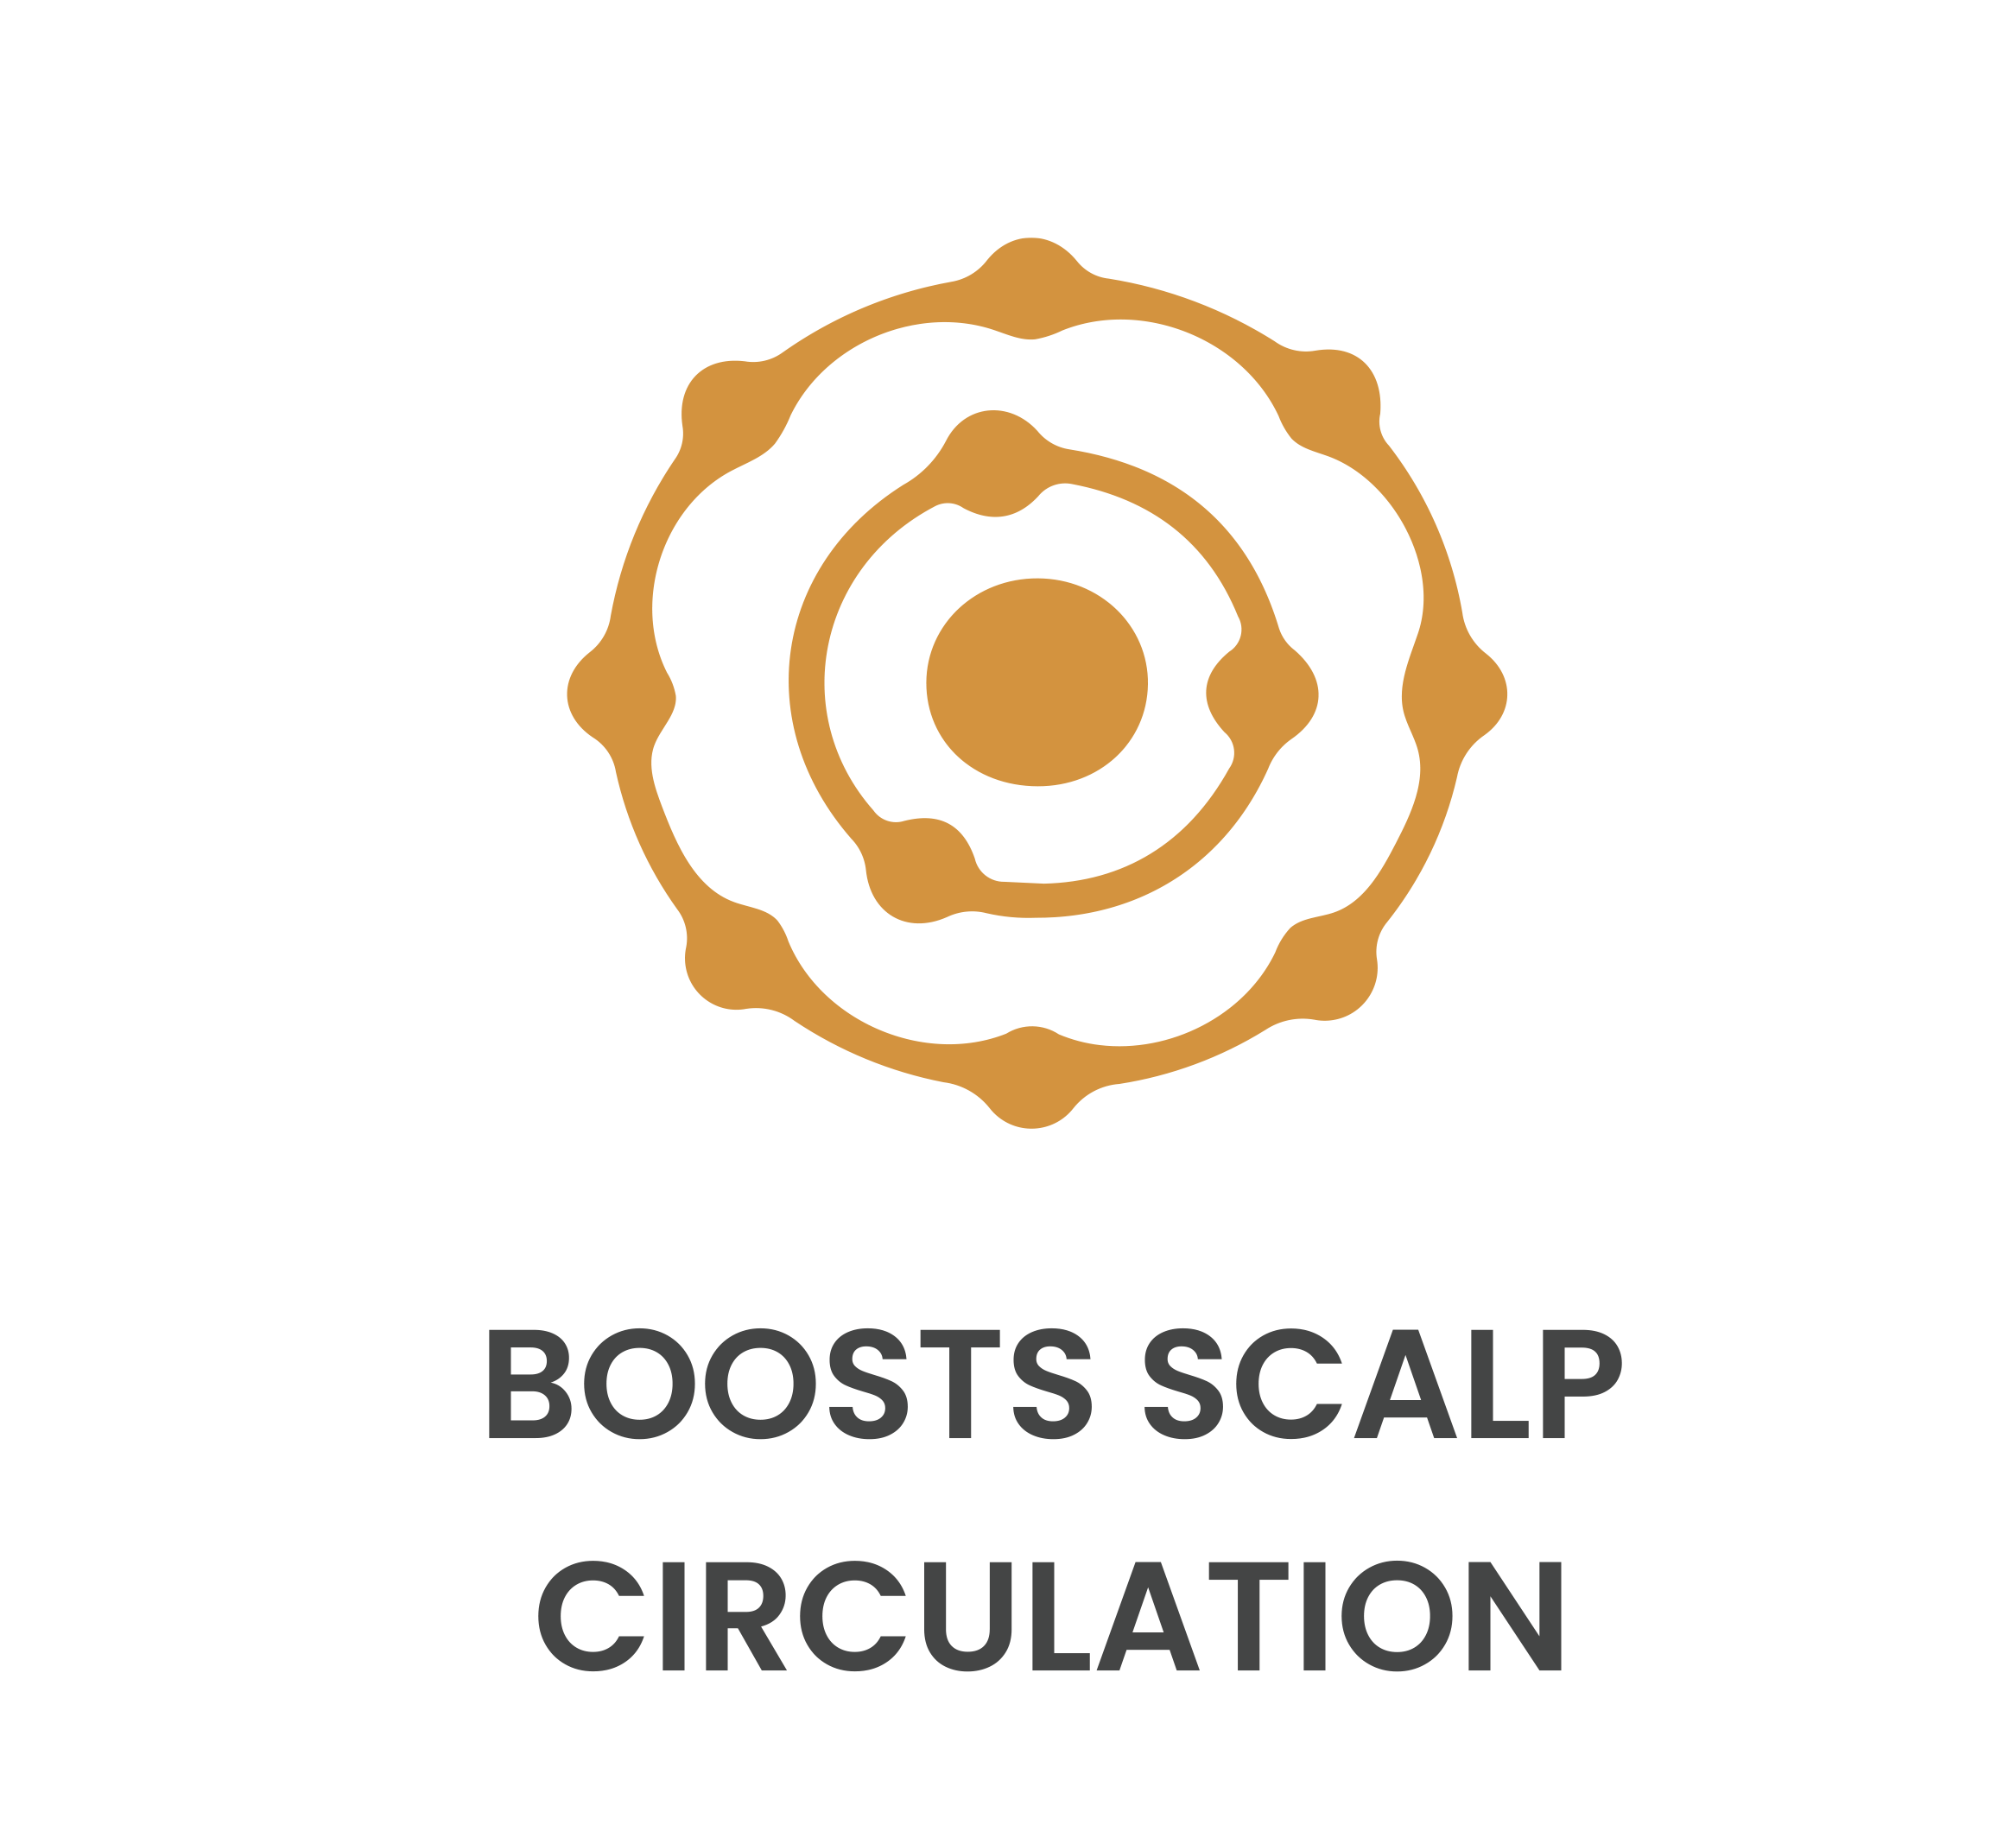 Boosts Scalp Circulation